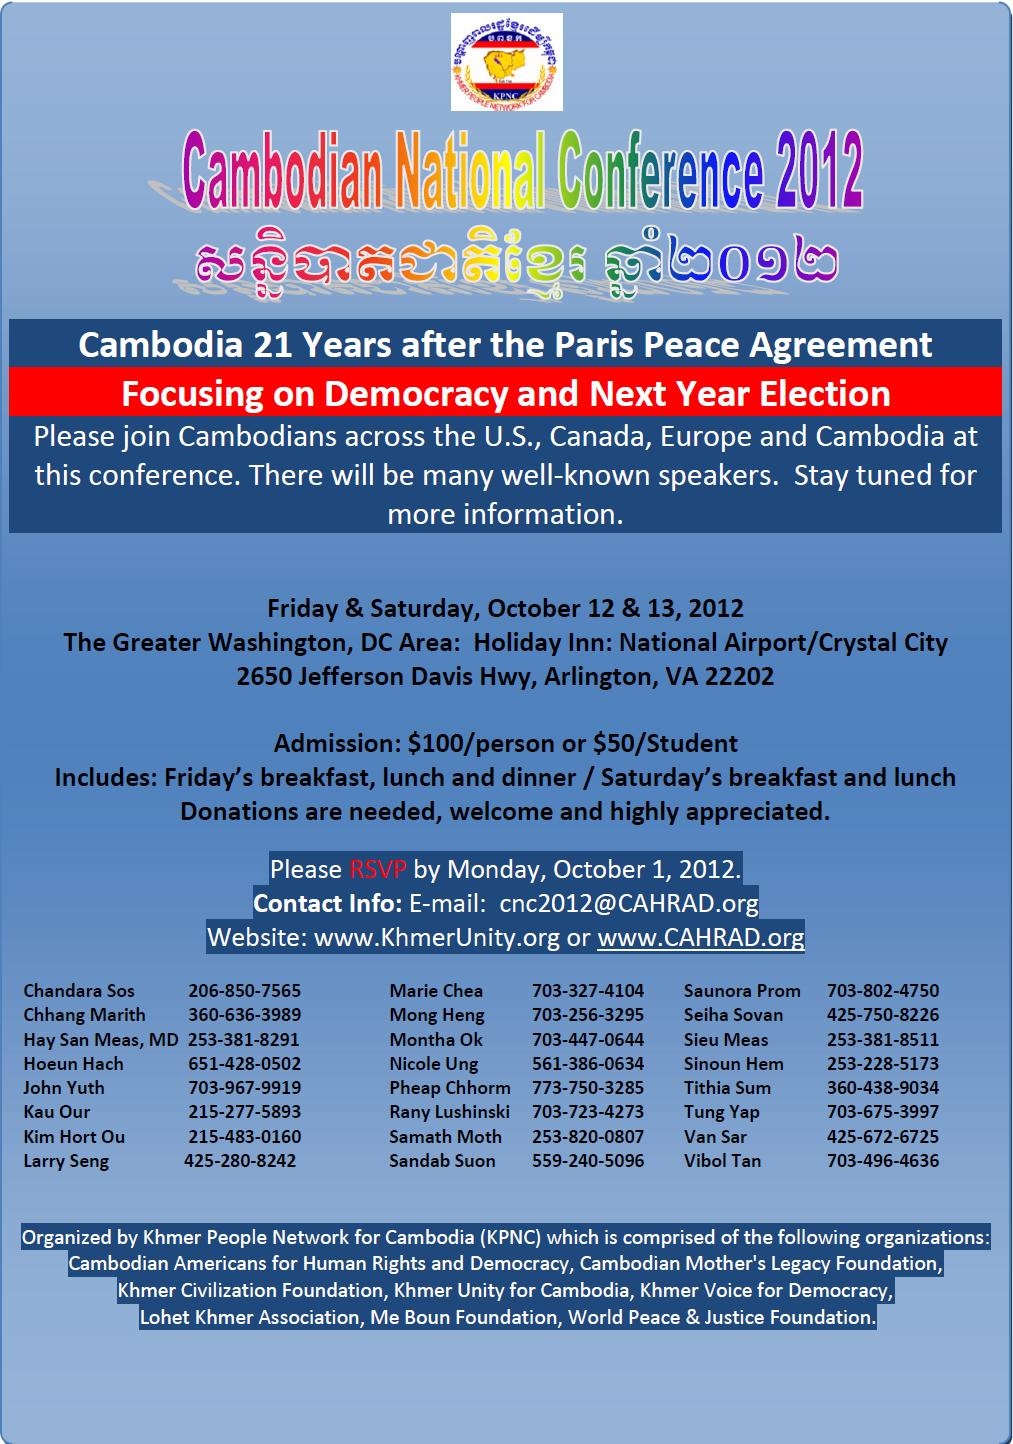 Cambodian National Conference - Friday & Saturday, October 12-13, 2012, Washington, DC area